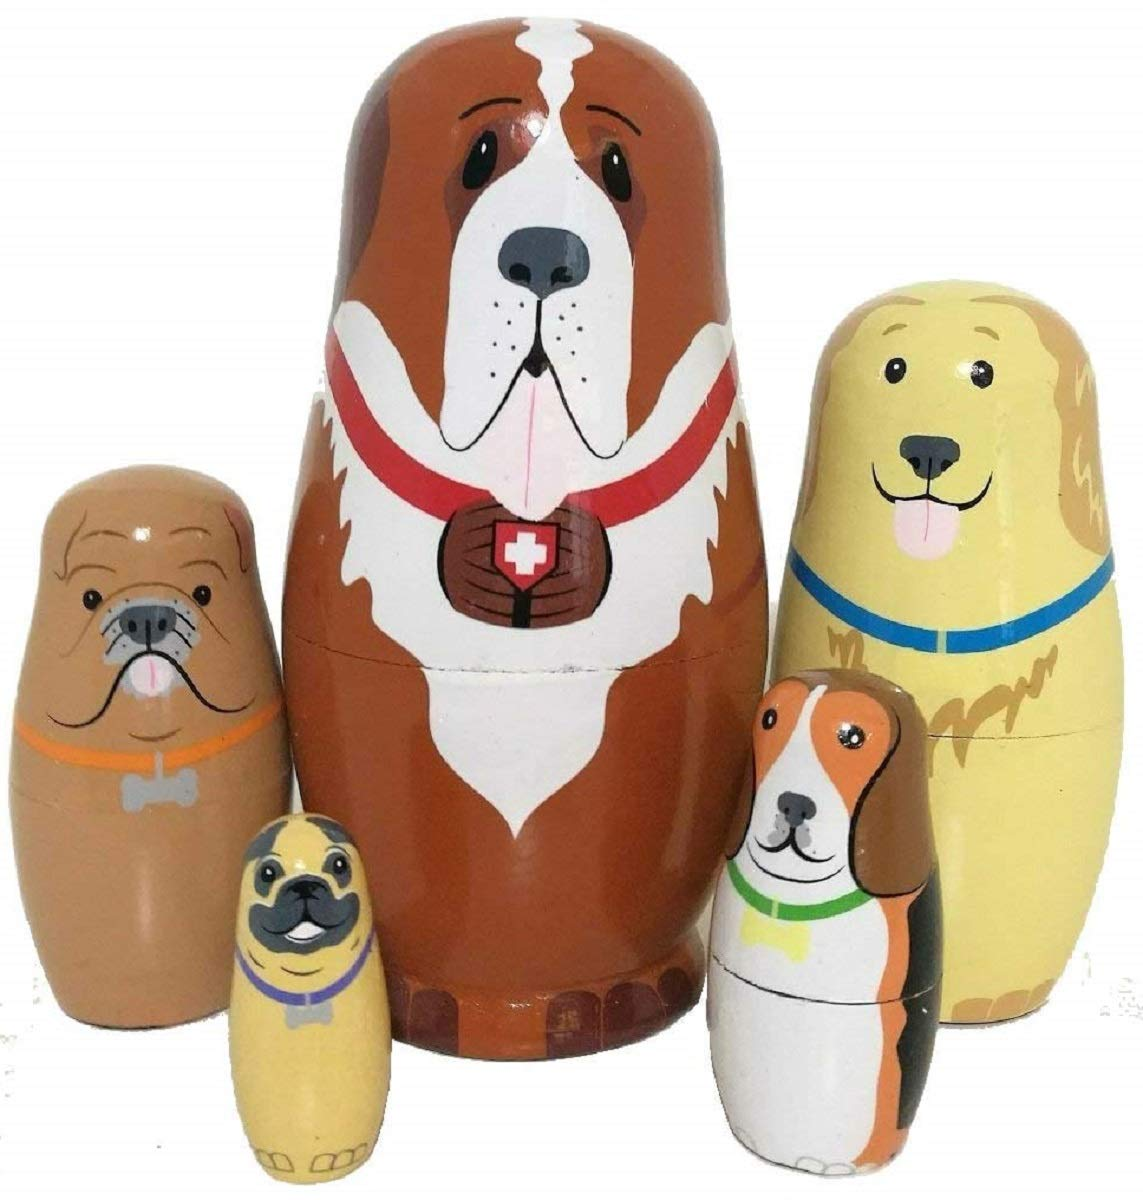 5pcs Cute and Funny Wooden Dog Stacking toys Russian nesting dolls Matryoshka gifts for kids Multicolor